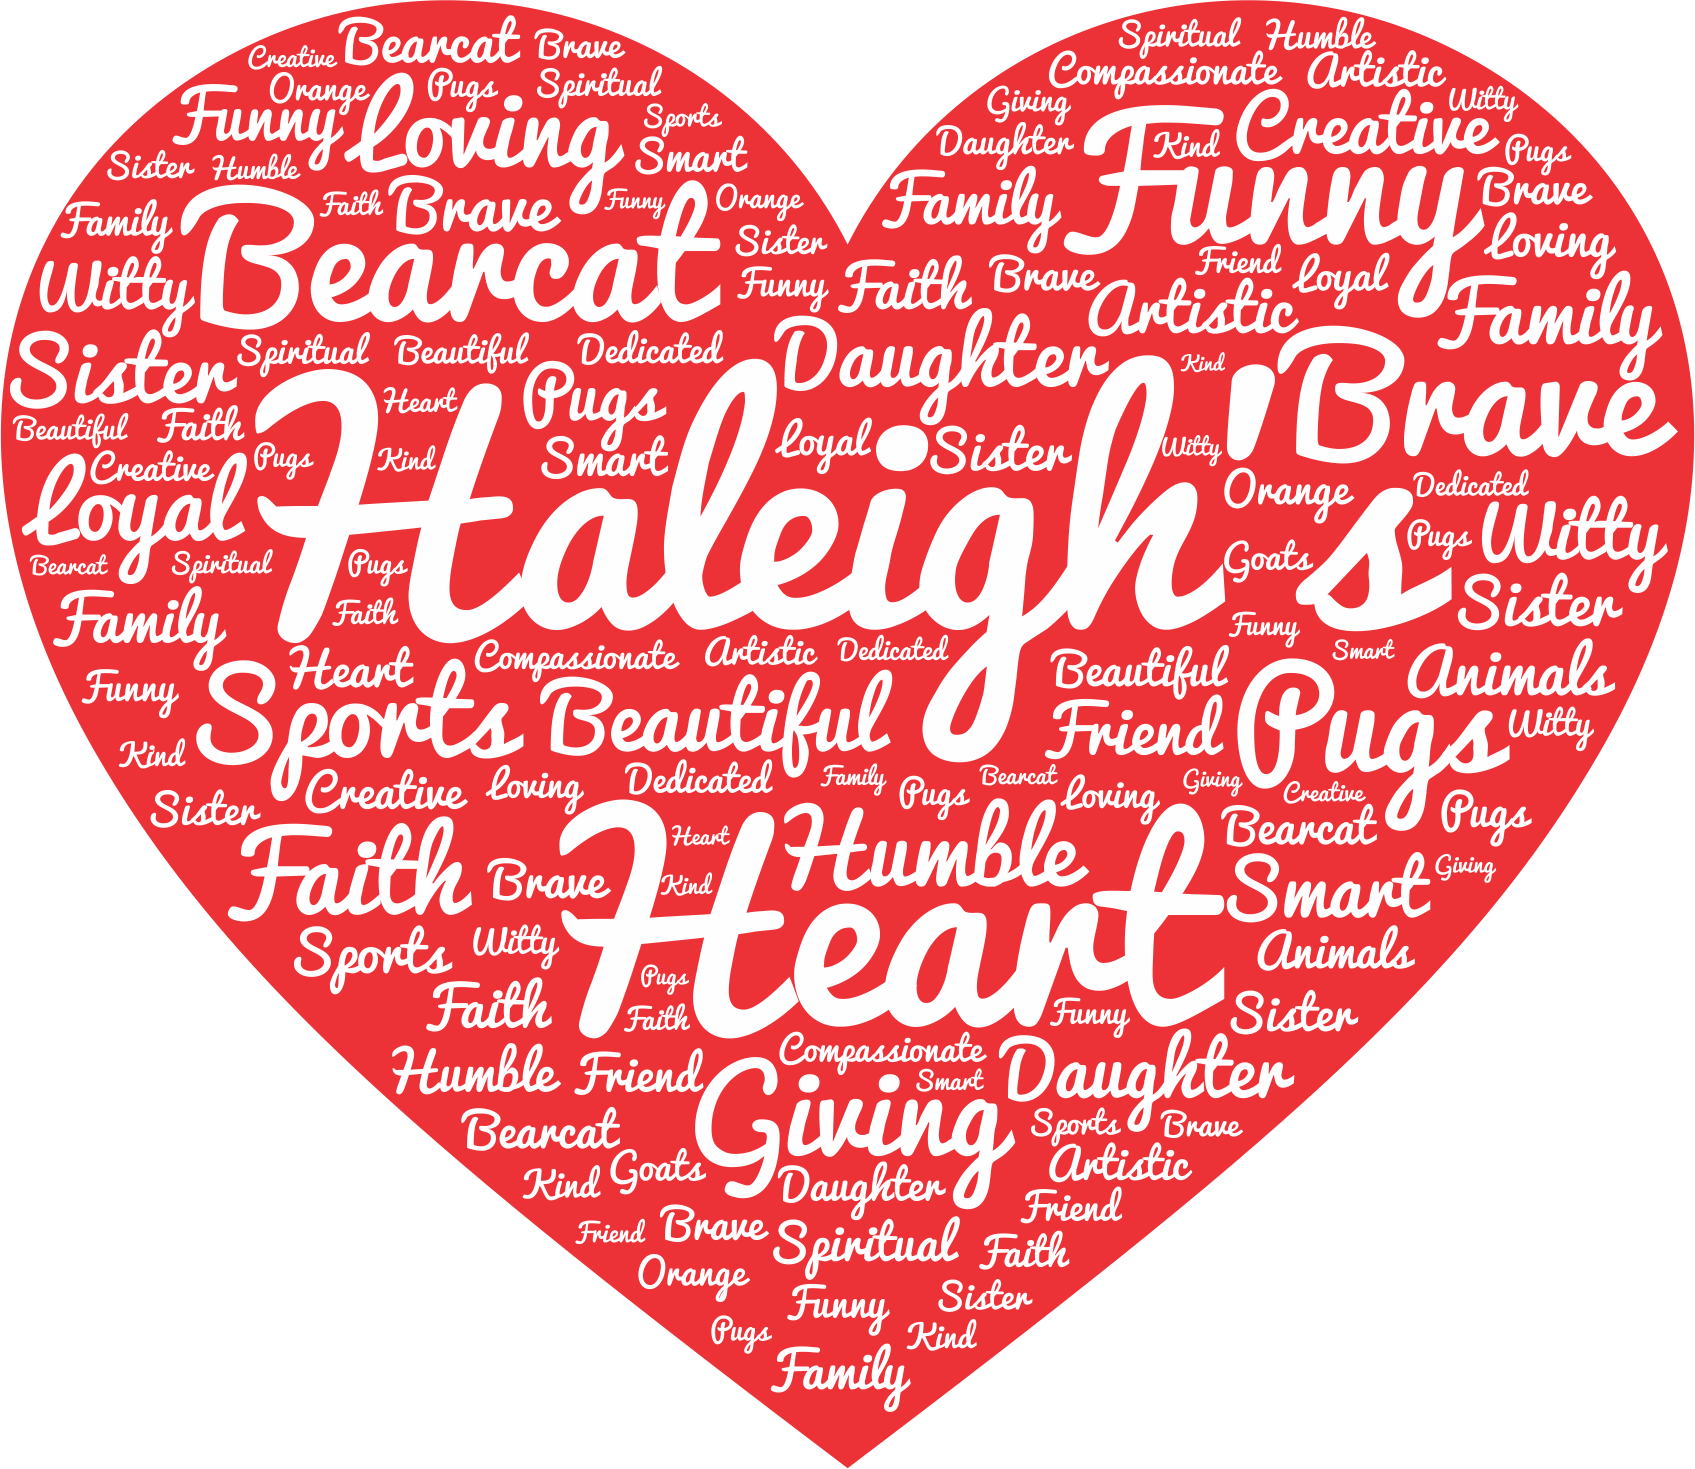 Haleigh Heart Logo - Transparent background.png